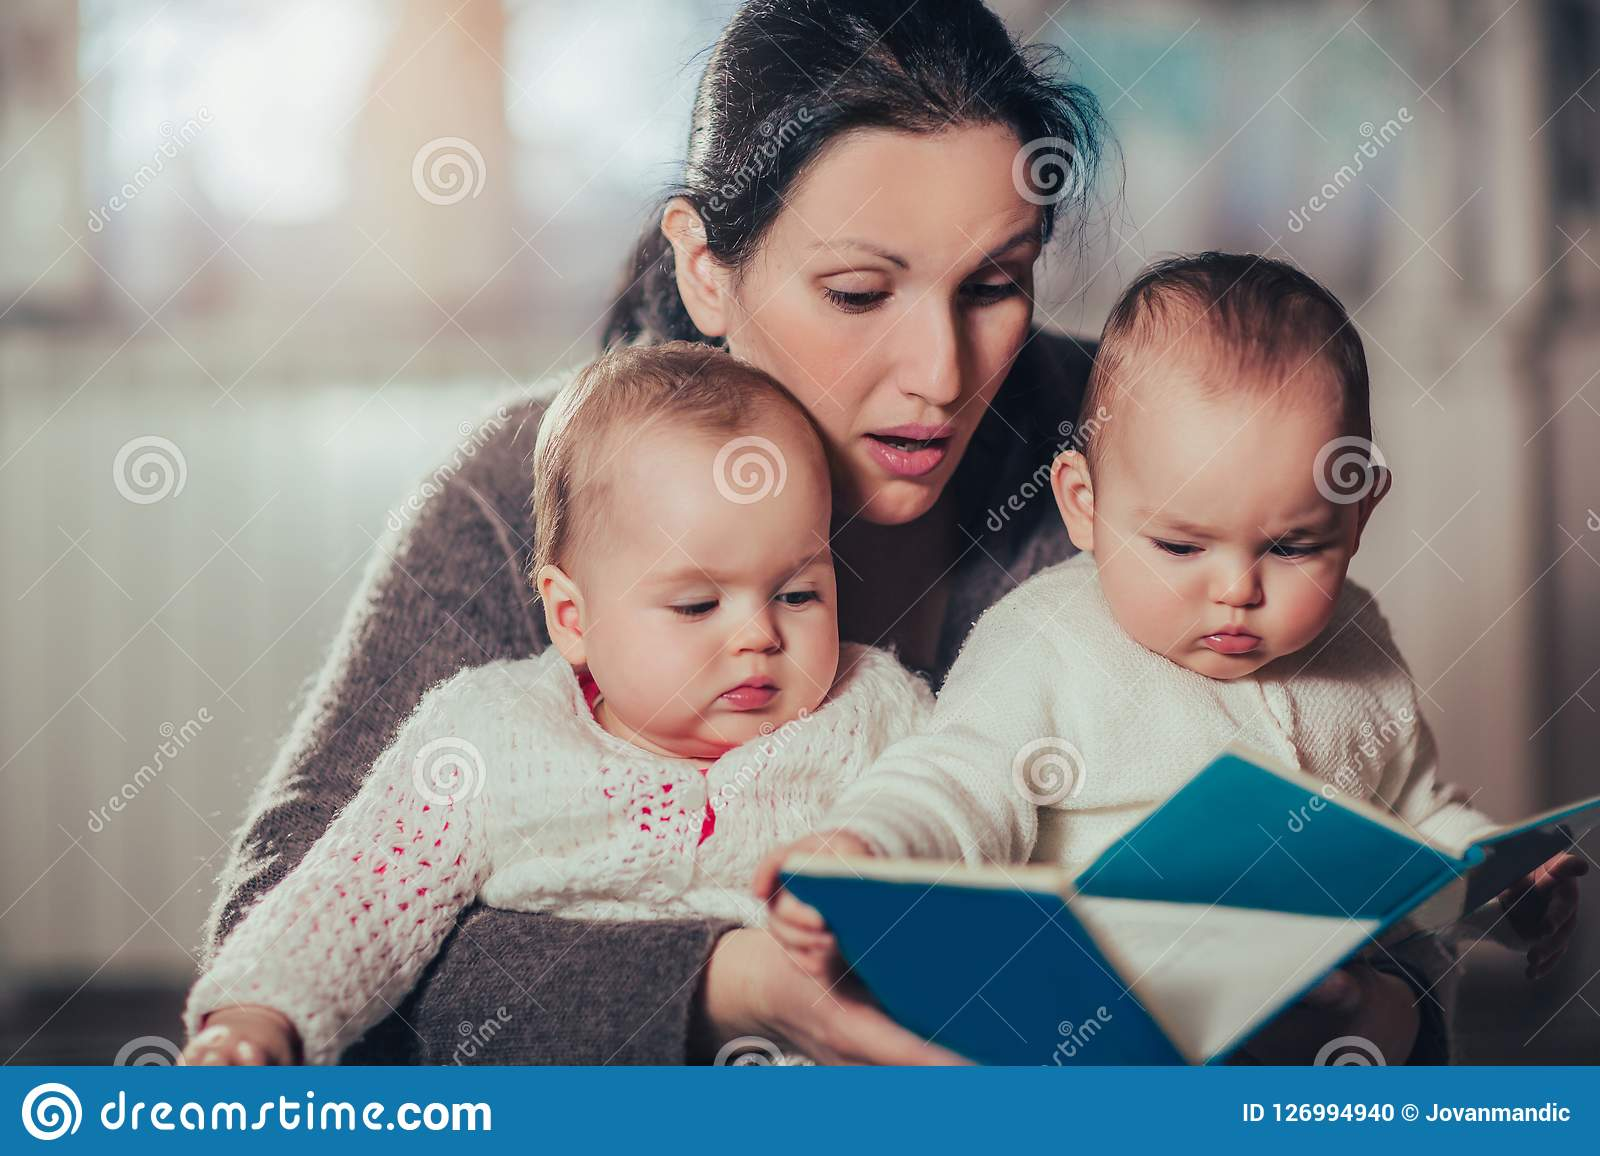 Charming mother showing images in a book to her cute twin babies